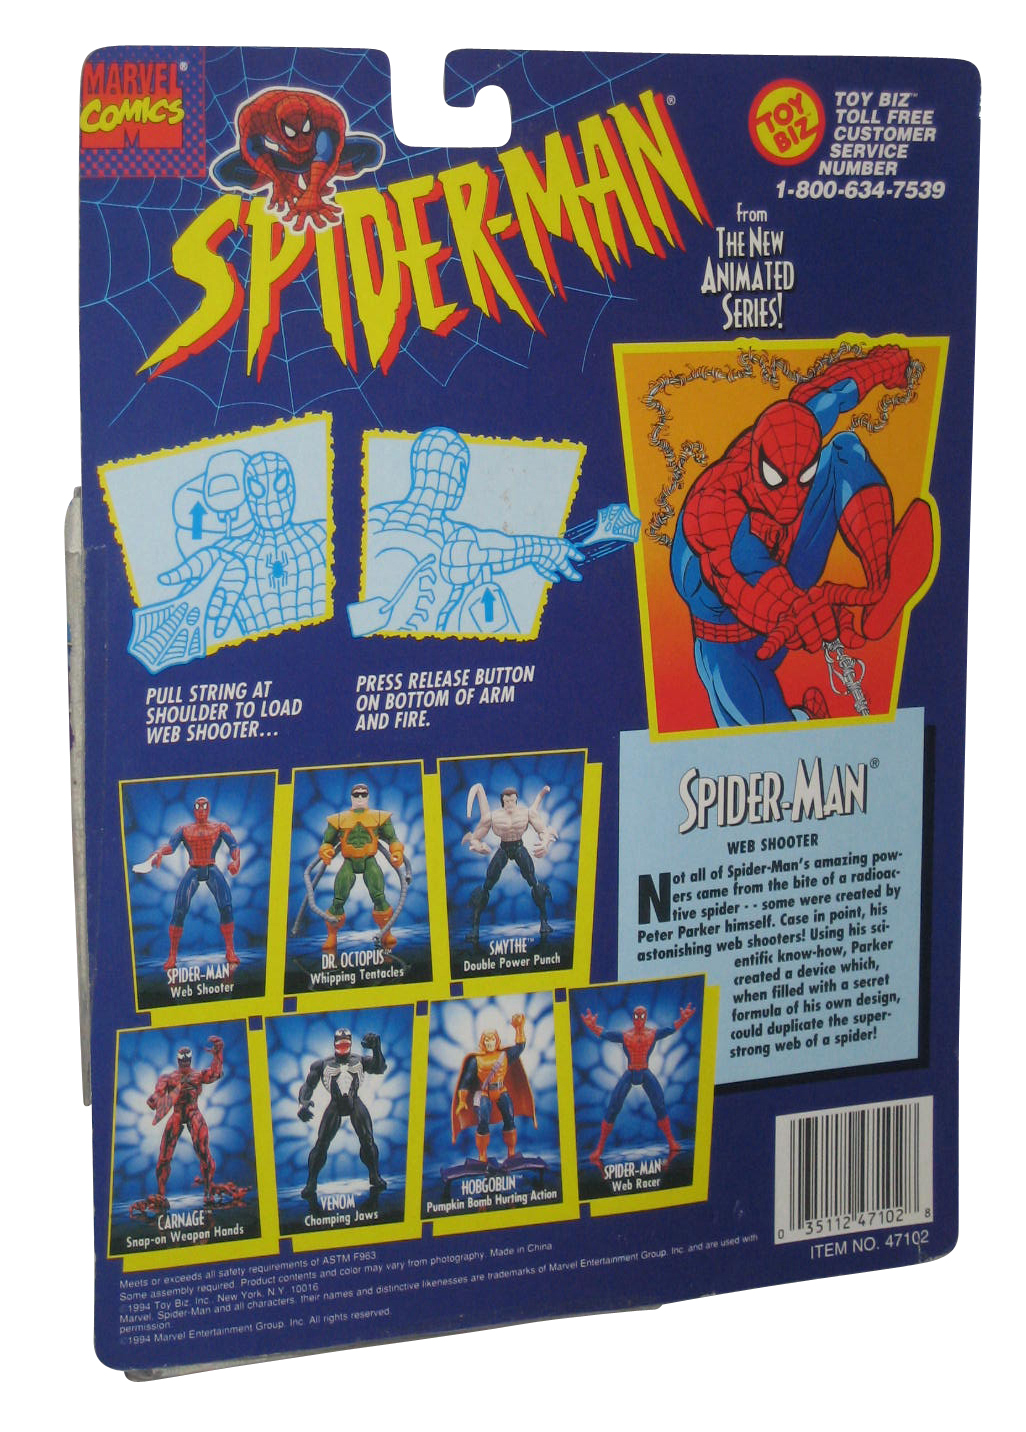 Marvel Comics Spider-Man Animated Series Toy Biz Figure w/ Web Shooter